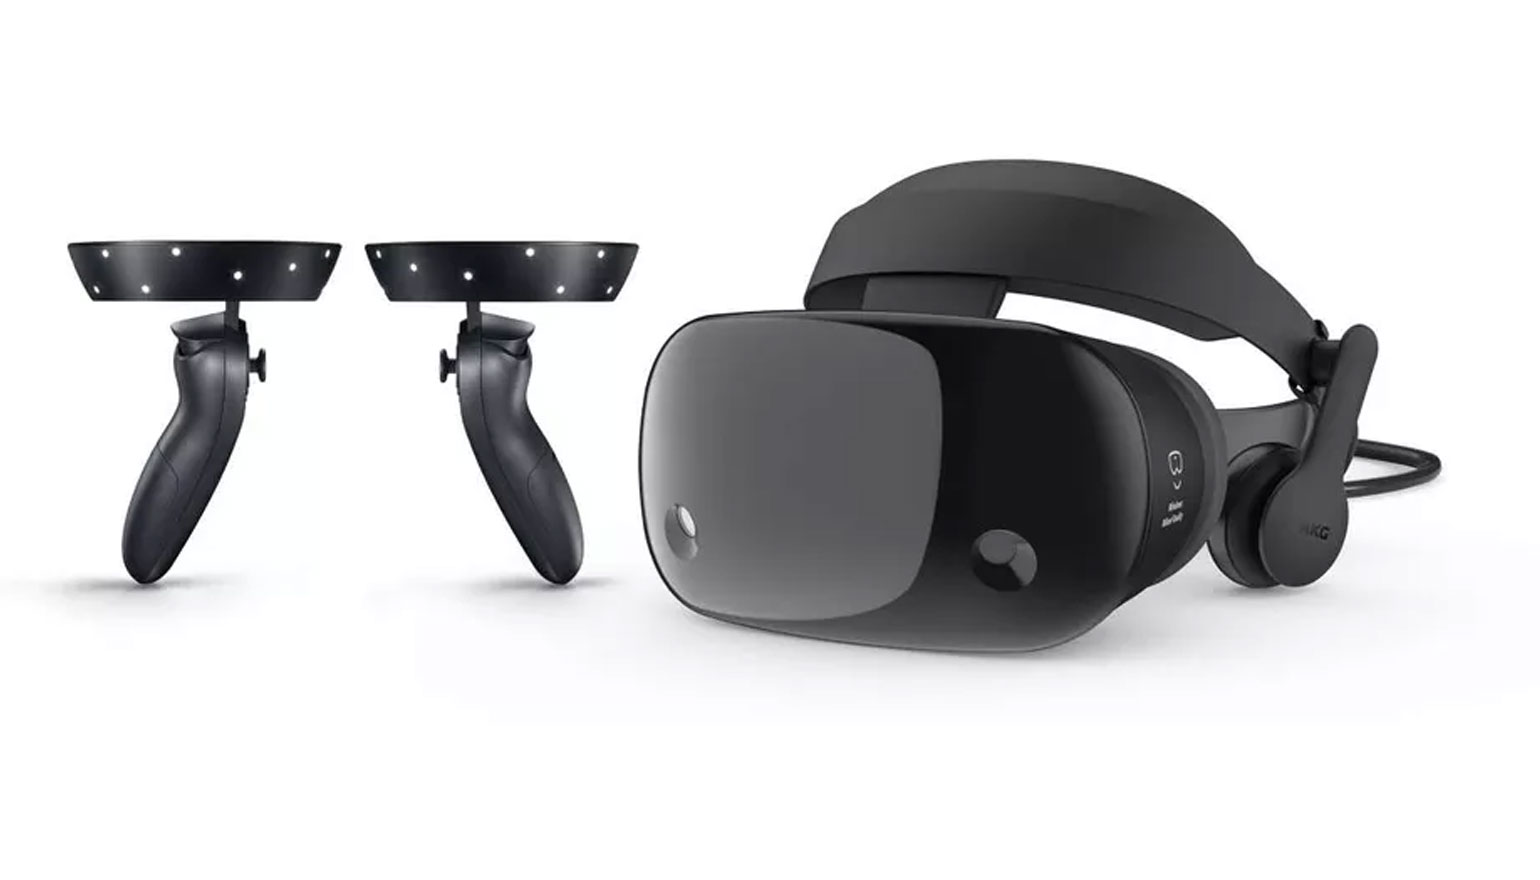 Samsung presenteert eigen headset voor Windows Mixed Reality